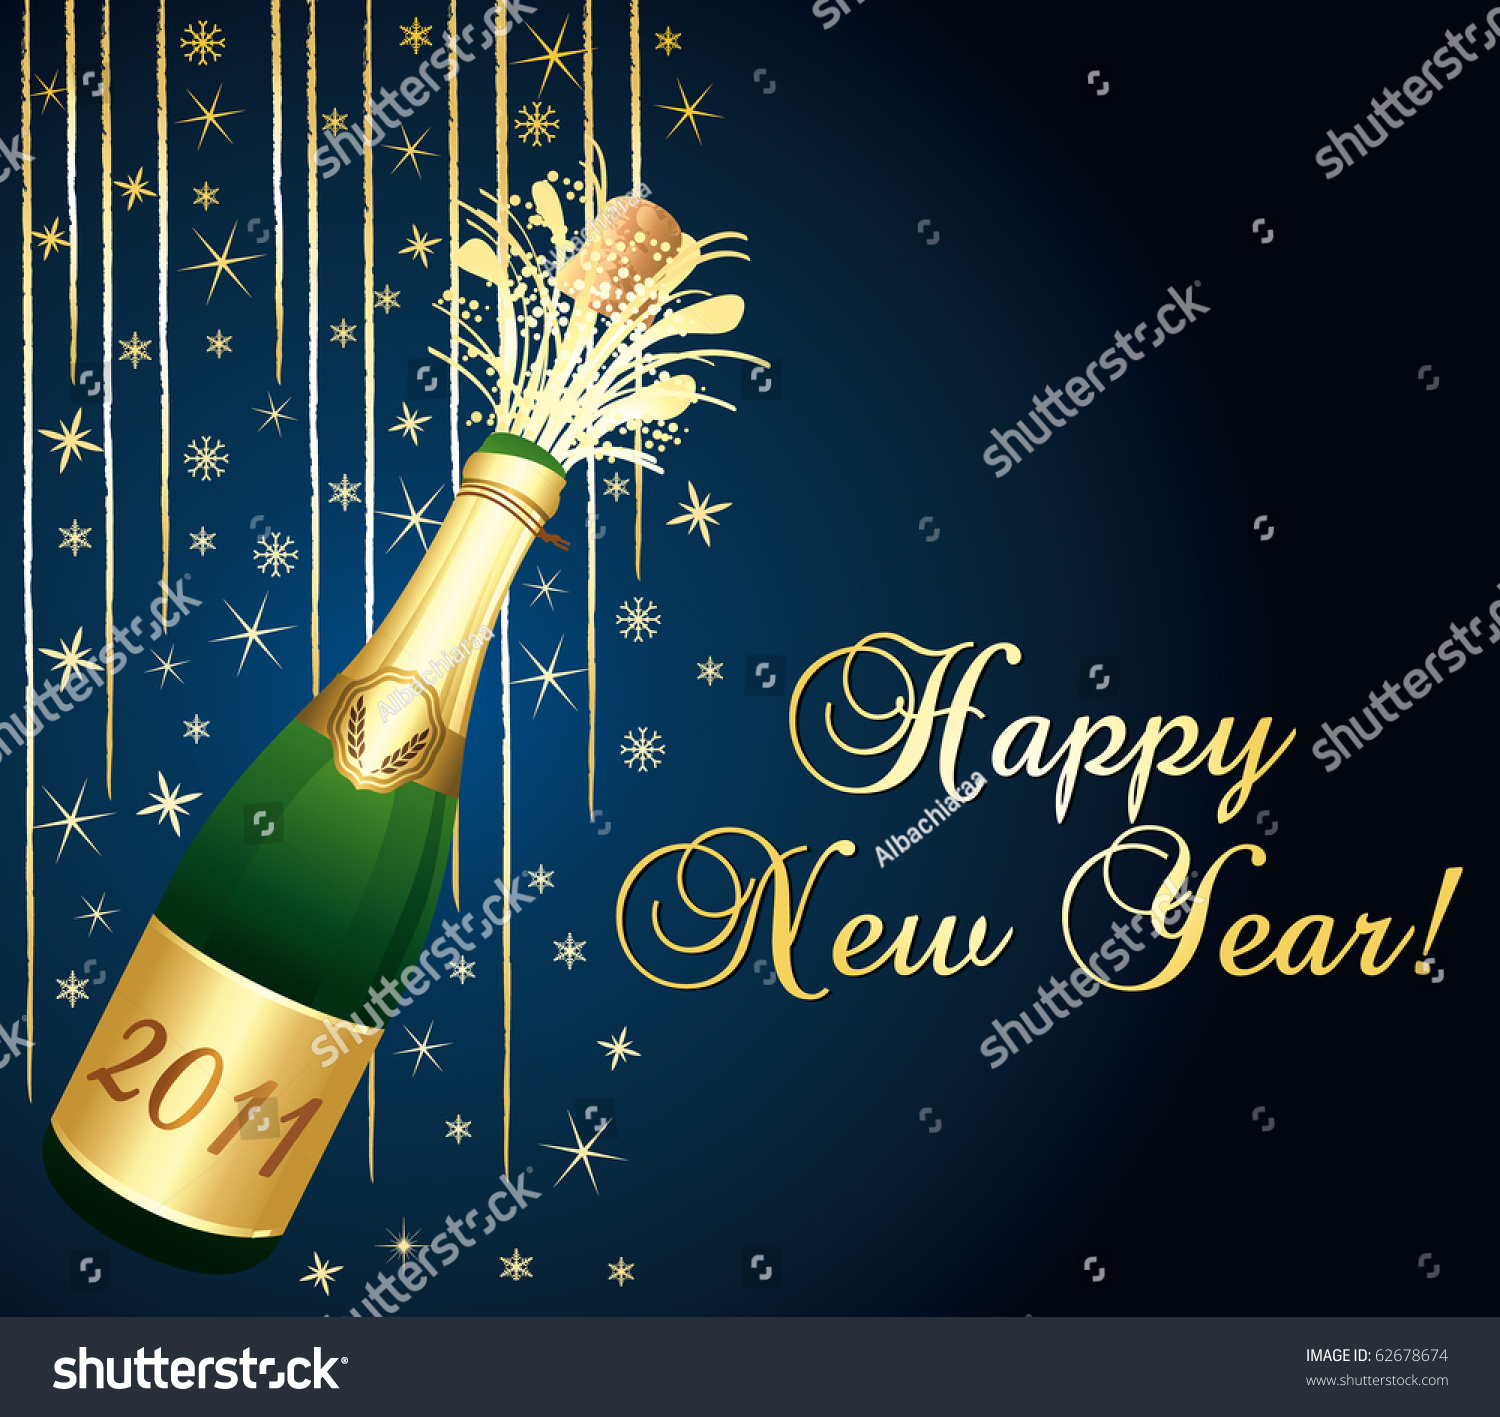 Happy New Year 2011 Greeting Card Stock Illustration 62678674